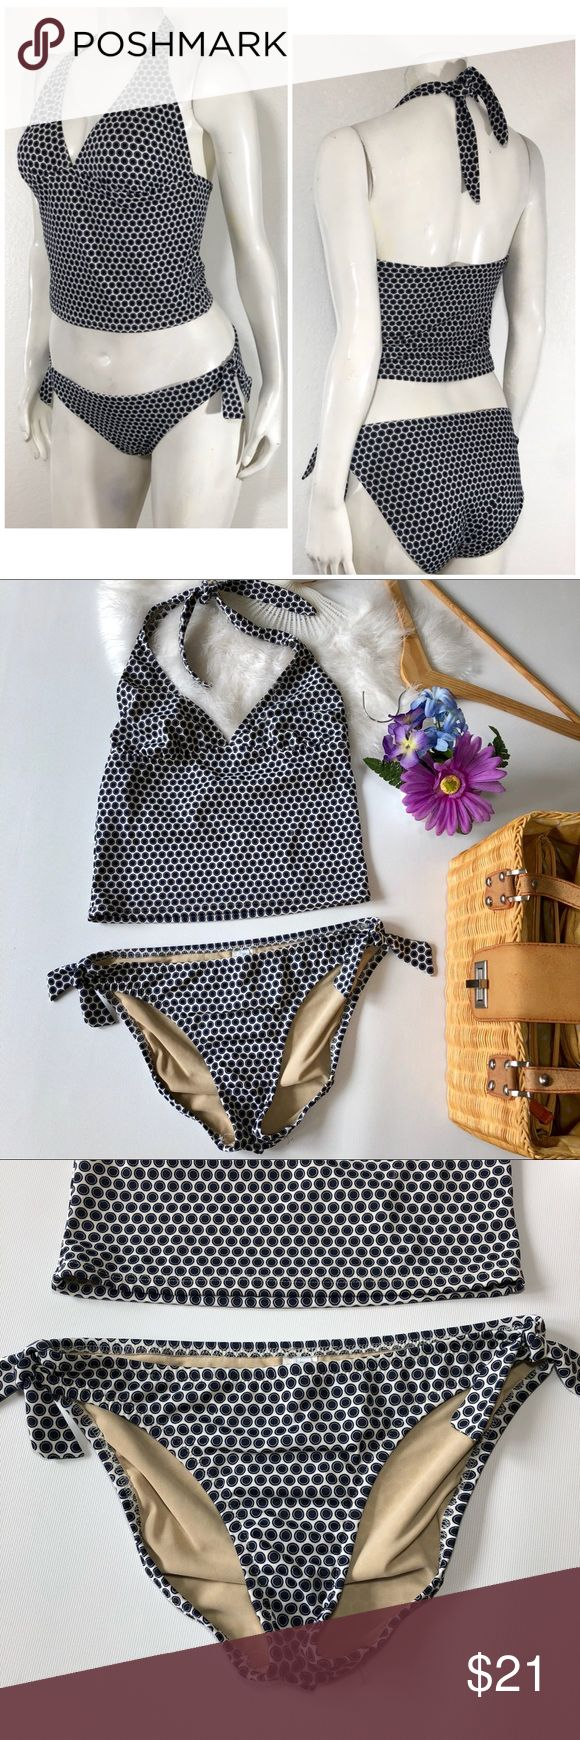 """J. Crew bikini set swimsuit. White navy blue M J. Crew bikini swimsuit set. Size M. White with navy blue polka dot print. In excellent conditions. Please see pictures for fabric information. ALL MEASUREMENTS ARE APPROXIMATE AND LAYING FLAT: bottom  🔸WAIST: 14"""" 🔸LEG OPENING:  10""""  ALL MEASUREMENTS ARE APPROXIMATE AND LAYING FLAT: Top 🔸LENGTH: 15""""  🔸PIT TO PIT: 13.5"""" 🔸WAIST: 13.5"""" FEEL FREE TO ASK QUESTIONS  I DO NOT TRADE J. Crew Swim Bikinis"""